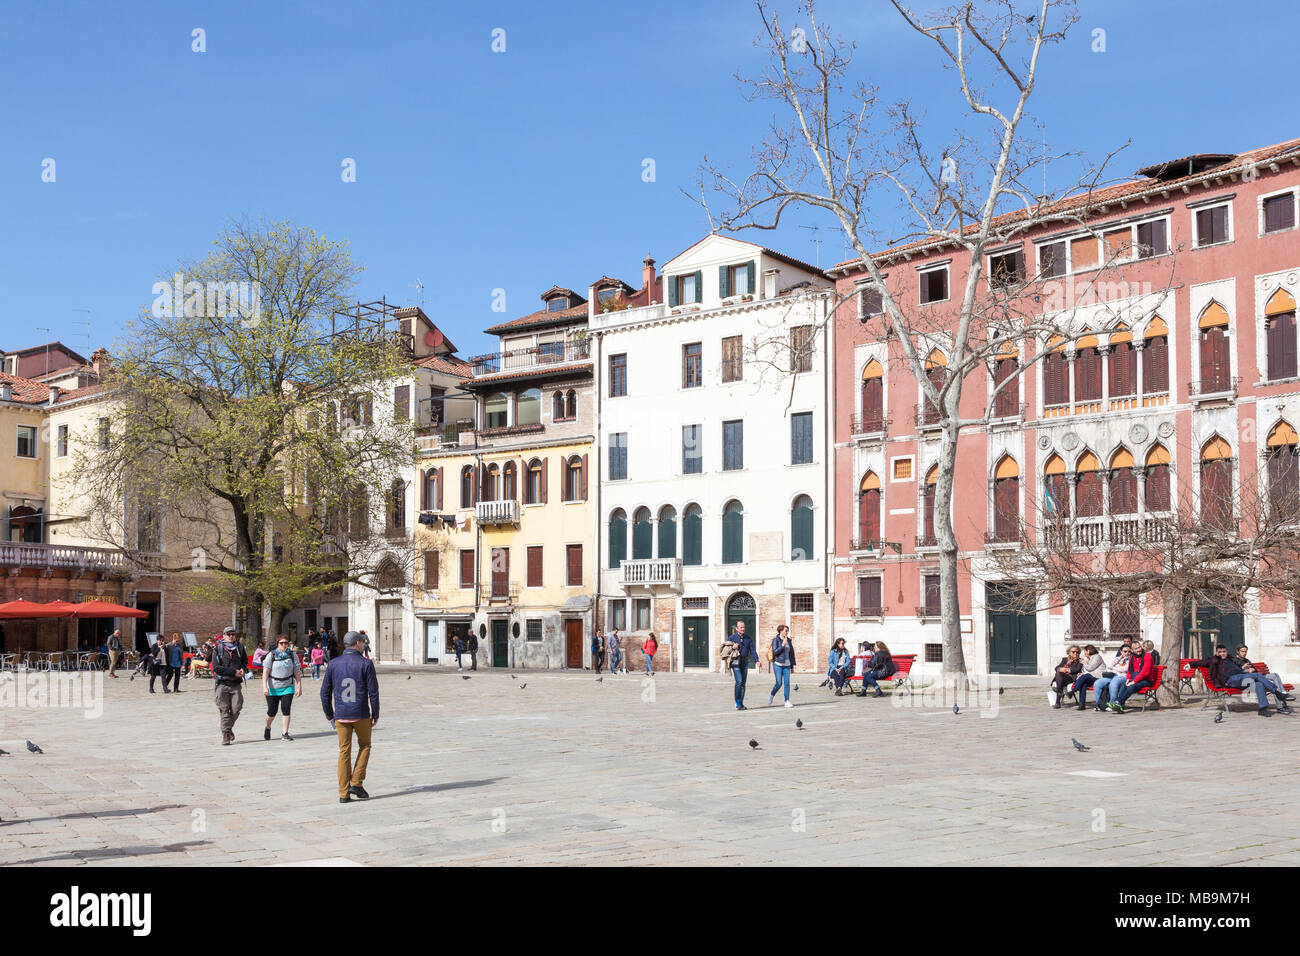 Campo San Polo, San Polo, Venice, Veneto, Italy in spring with locals and tourists relaxing on benches  and crossing the square in front of palazzos - Stock Image